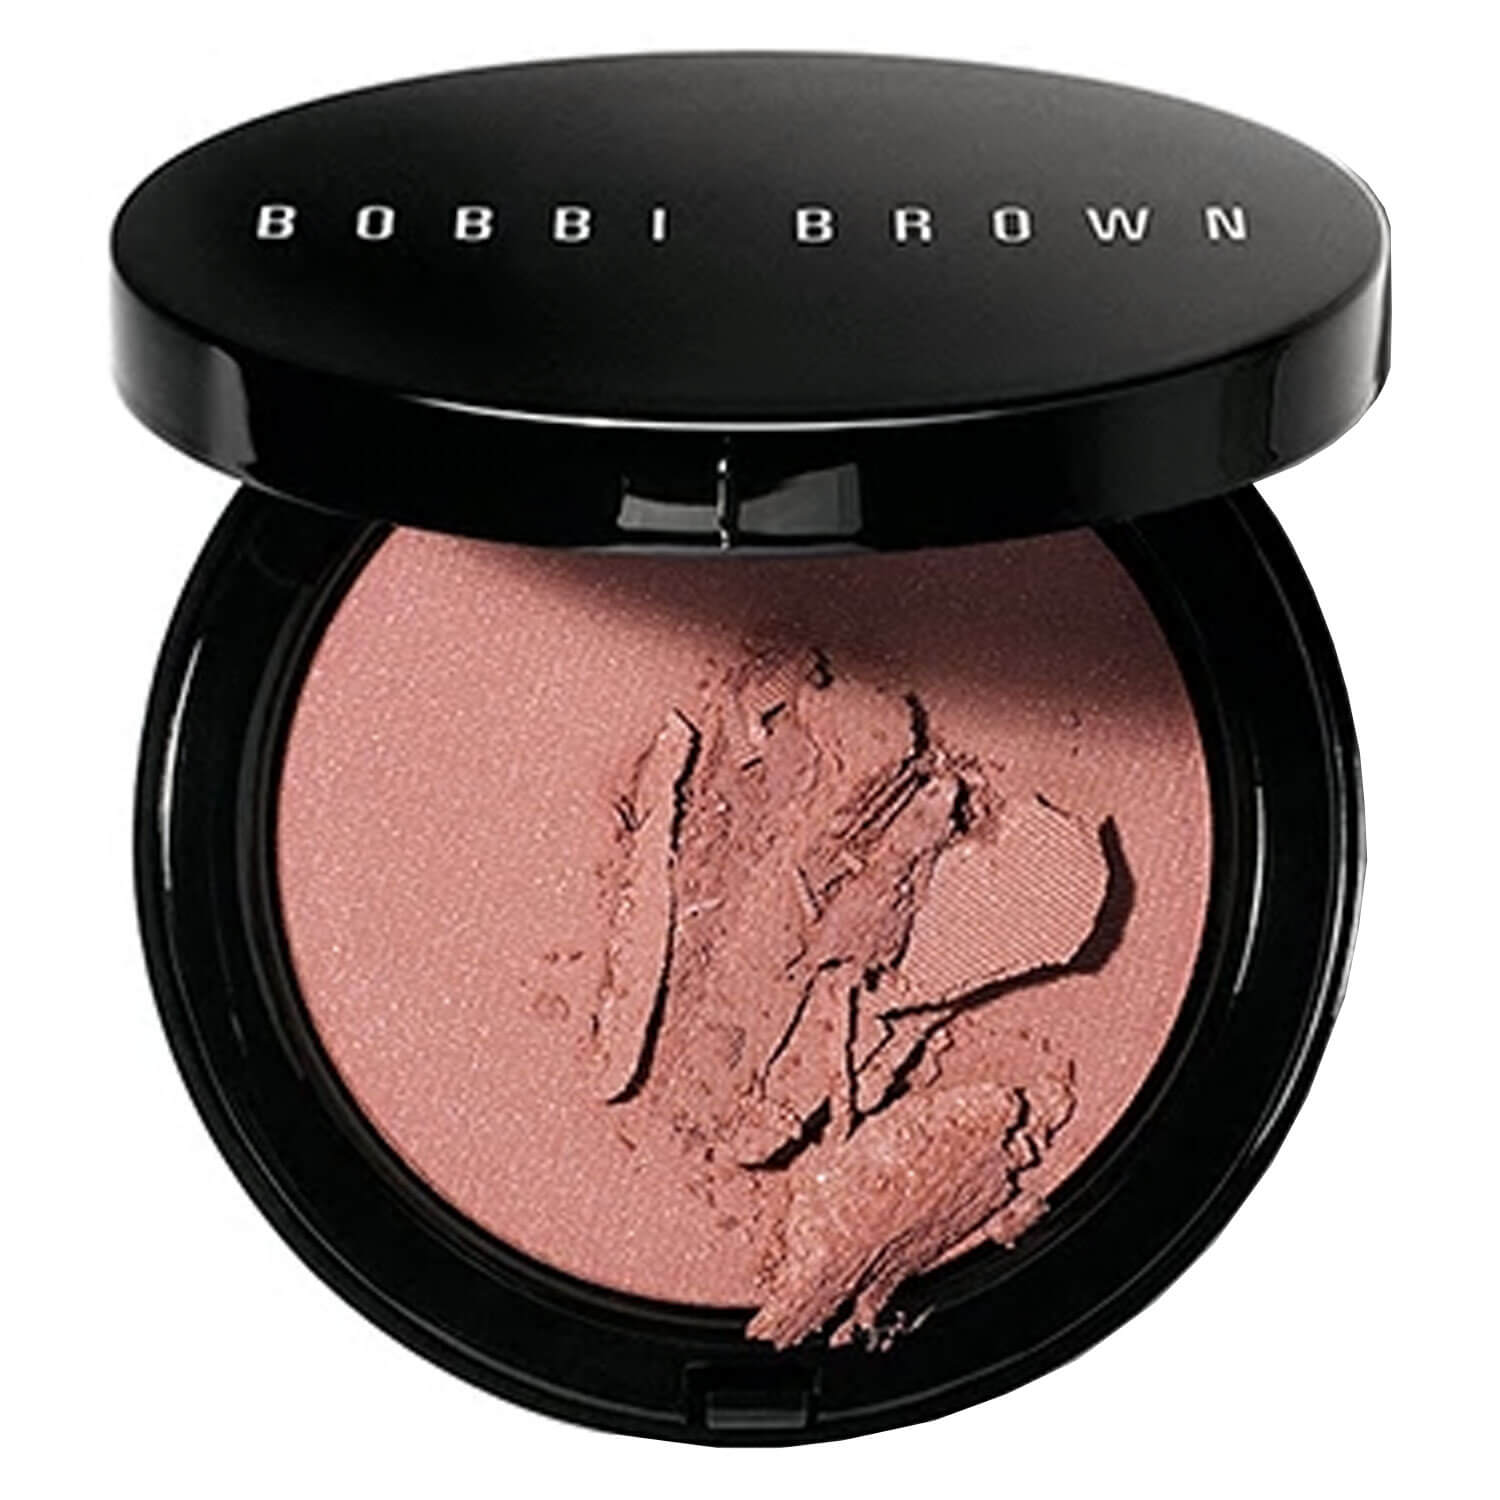 BB Bronzer - Illuminating Bronzing Powder Antigua